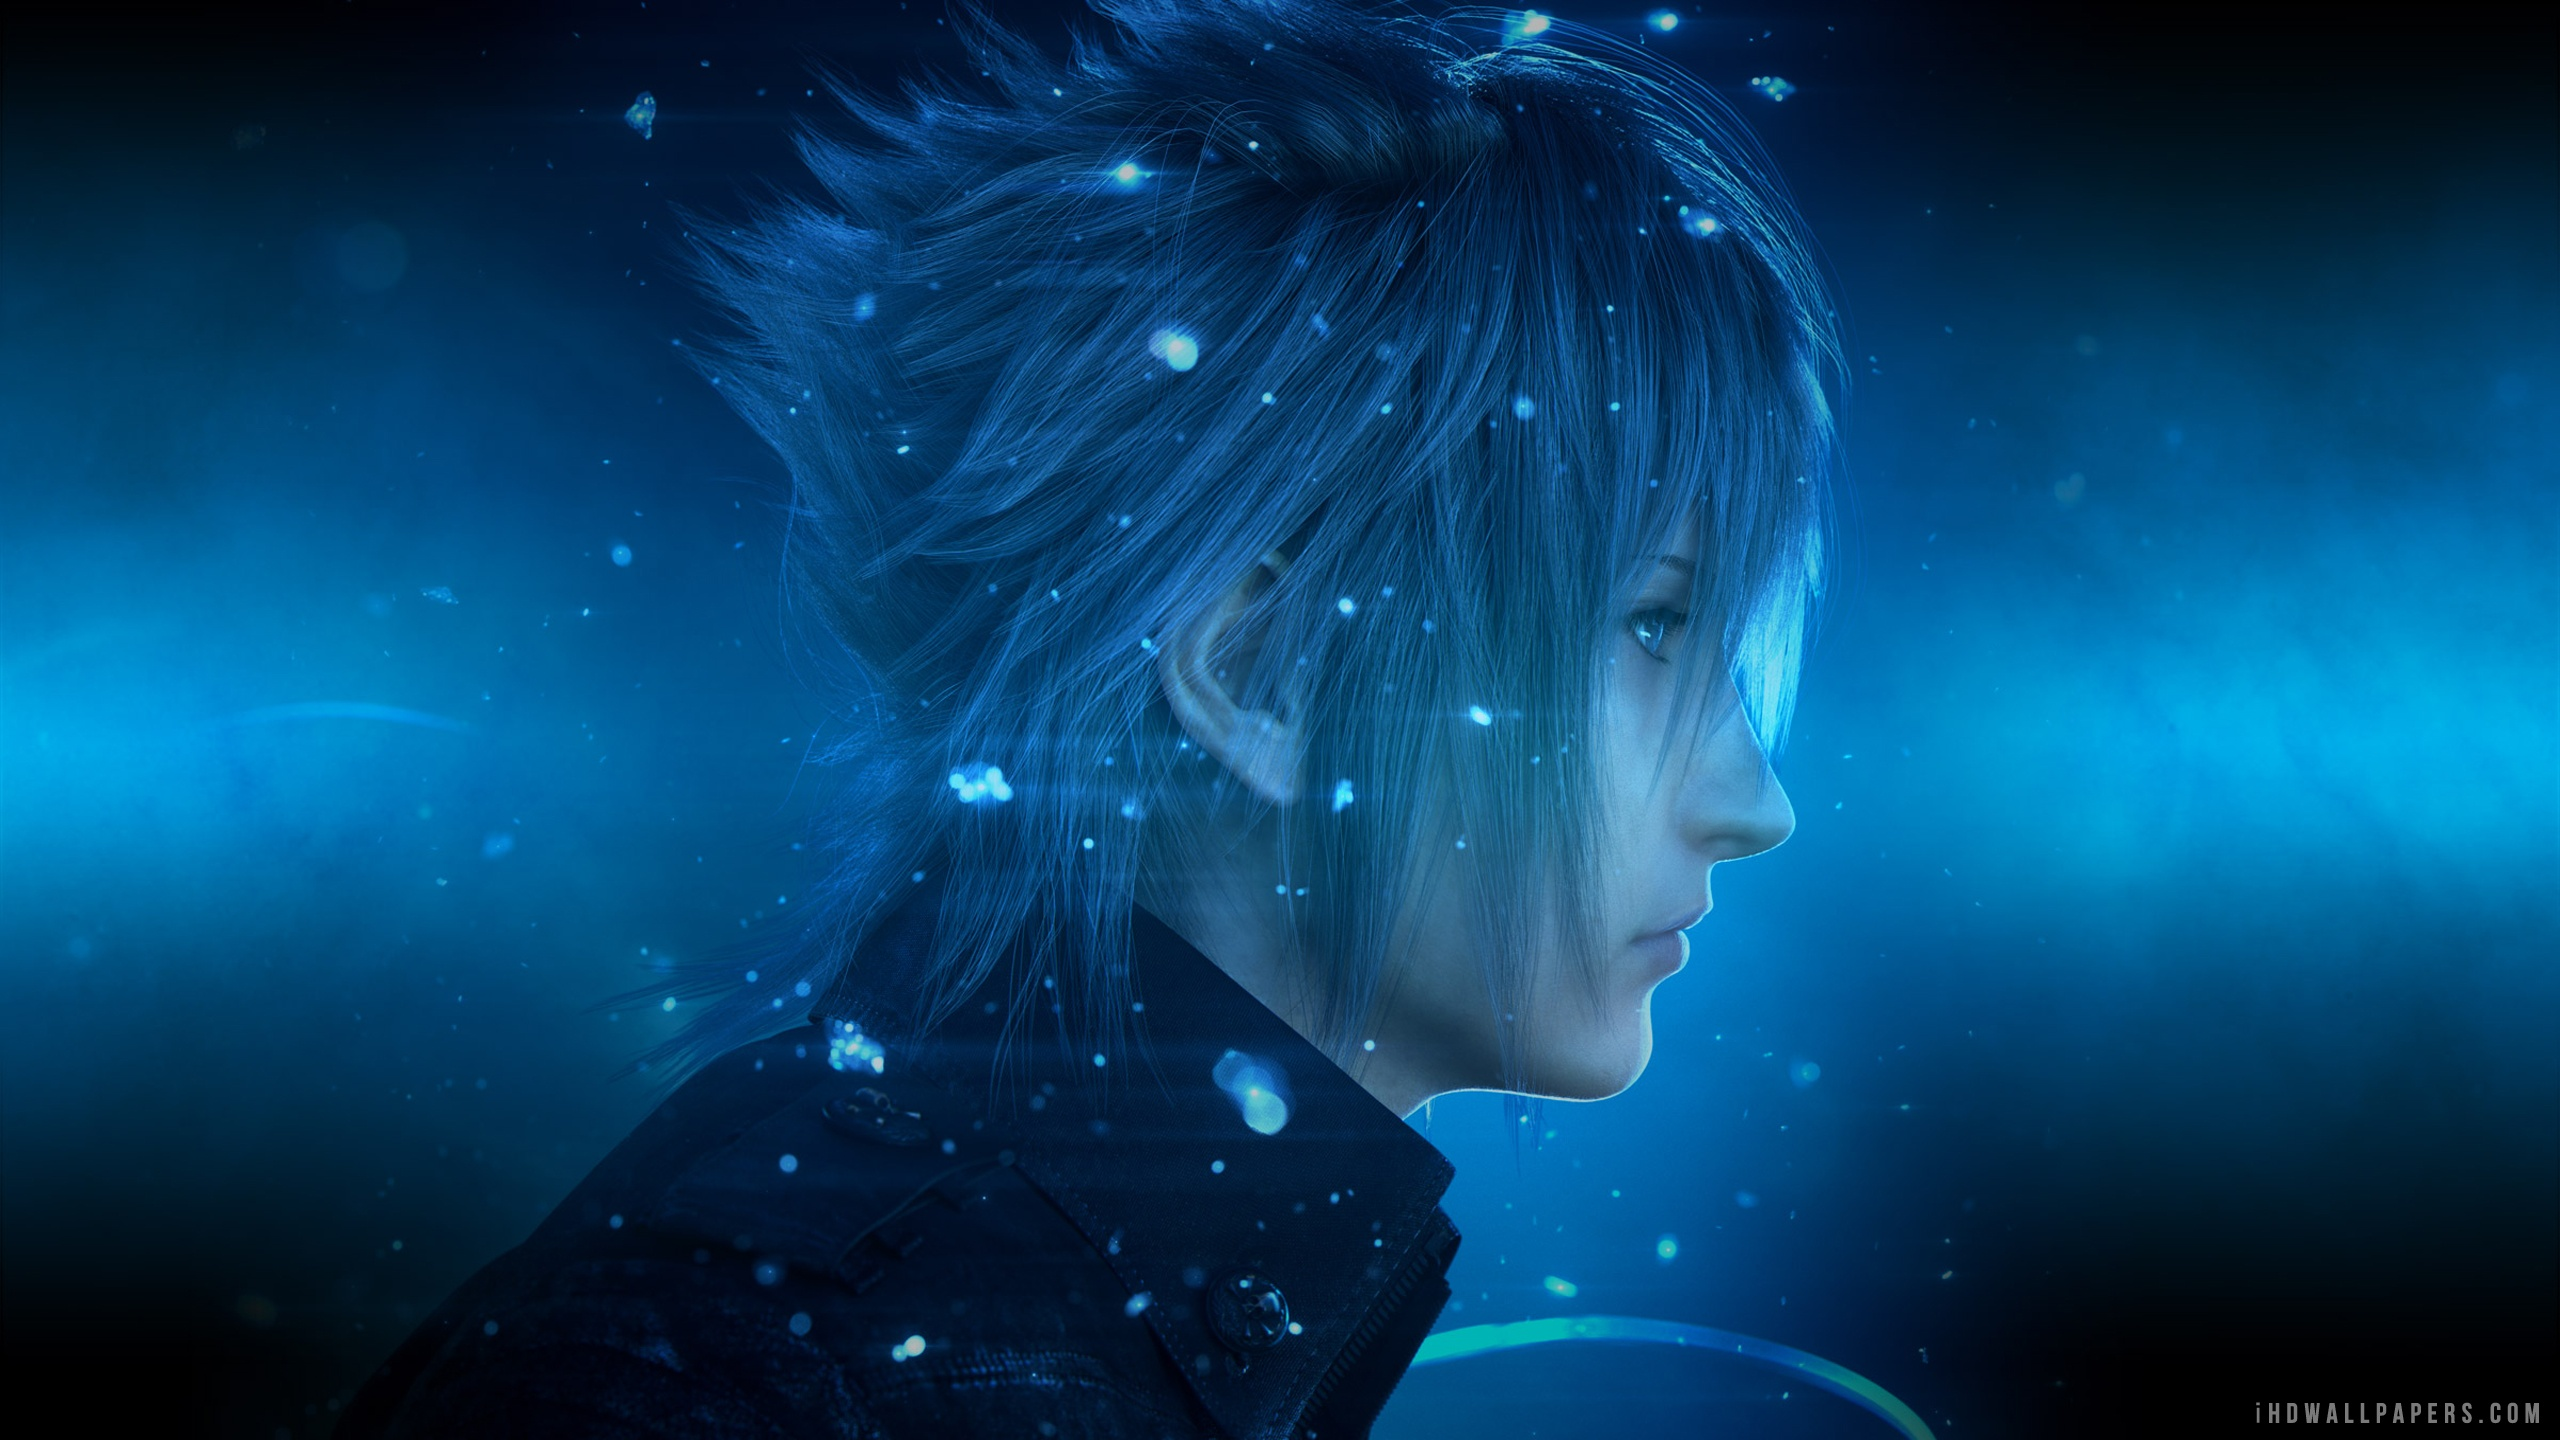 Final Fantasy Xv 4k Ultra Hd Wallpaper: Final Fantasy XV HD Wallpapers Free Download